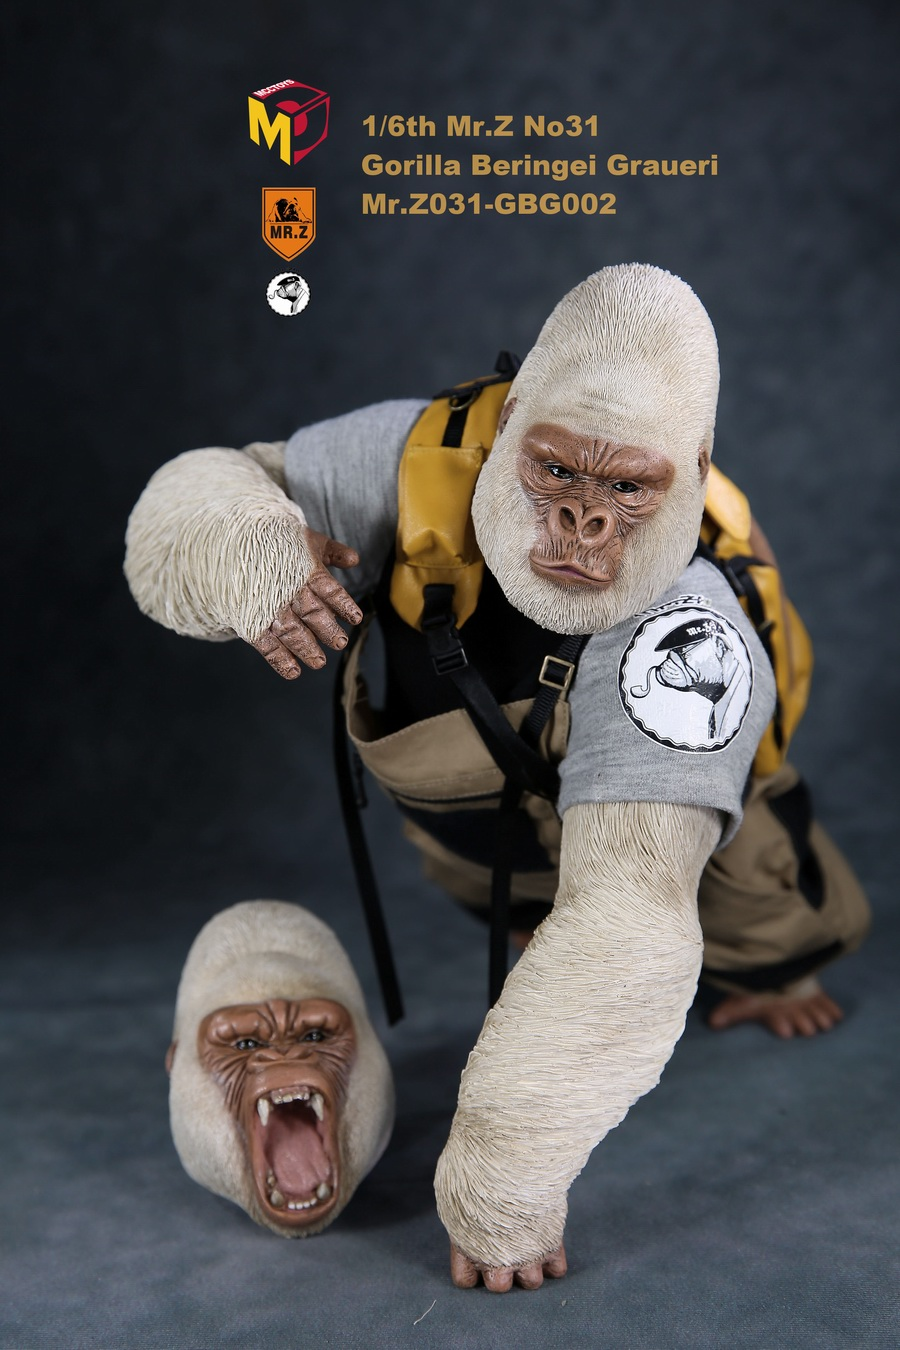 NEW PRODUCT: Mr.Z new product: 1/6 simulation animal model 31st bomb - African lowland gorilla (all 2 heads can be changed to upper limbs) 10110910